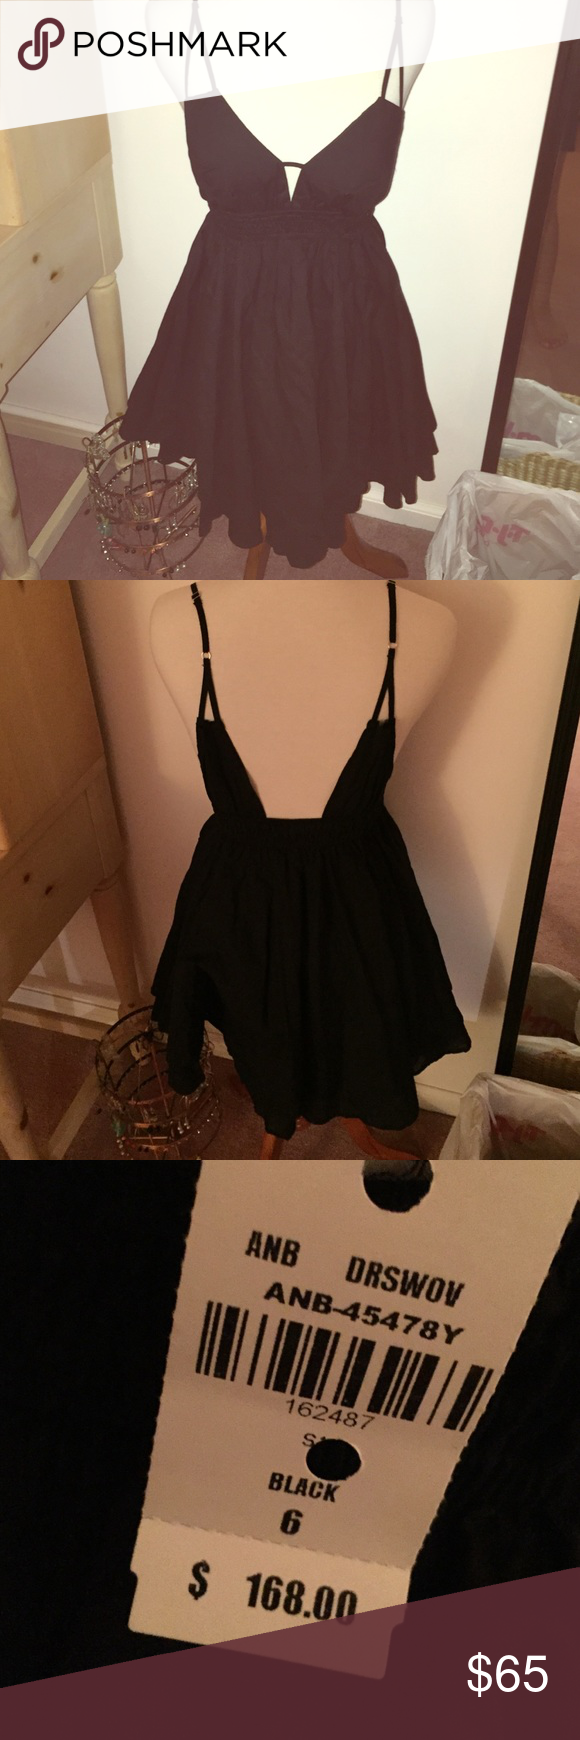 NWT LF Angel Biba Dress NWT size 6 (XS) Angel Biba dress. Never worn. Selling because the style isn't flattering on me. Price negotiable through the offer button only. LF Dresses Mini